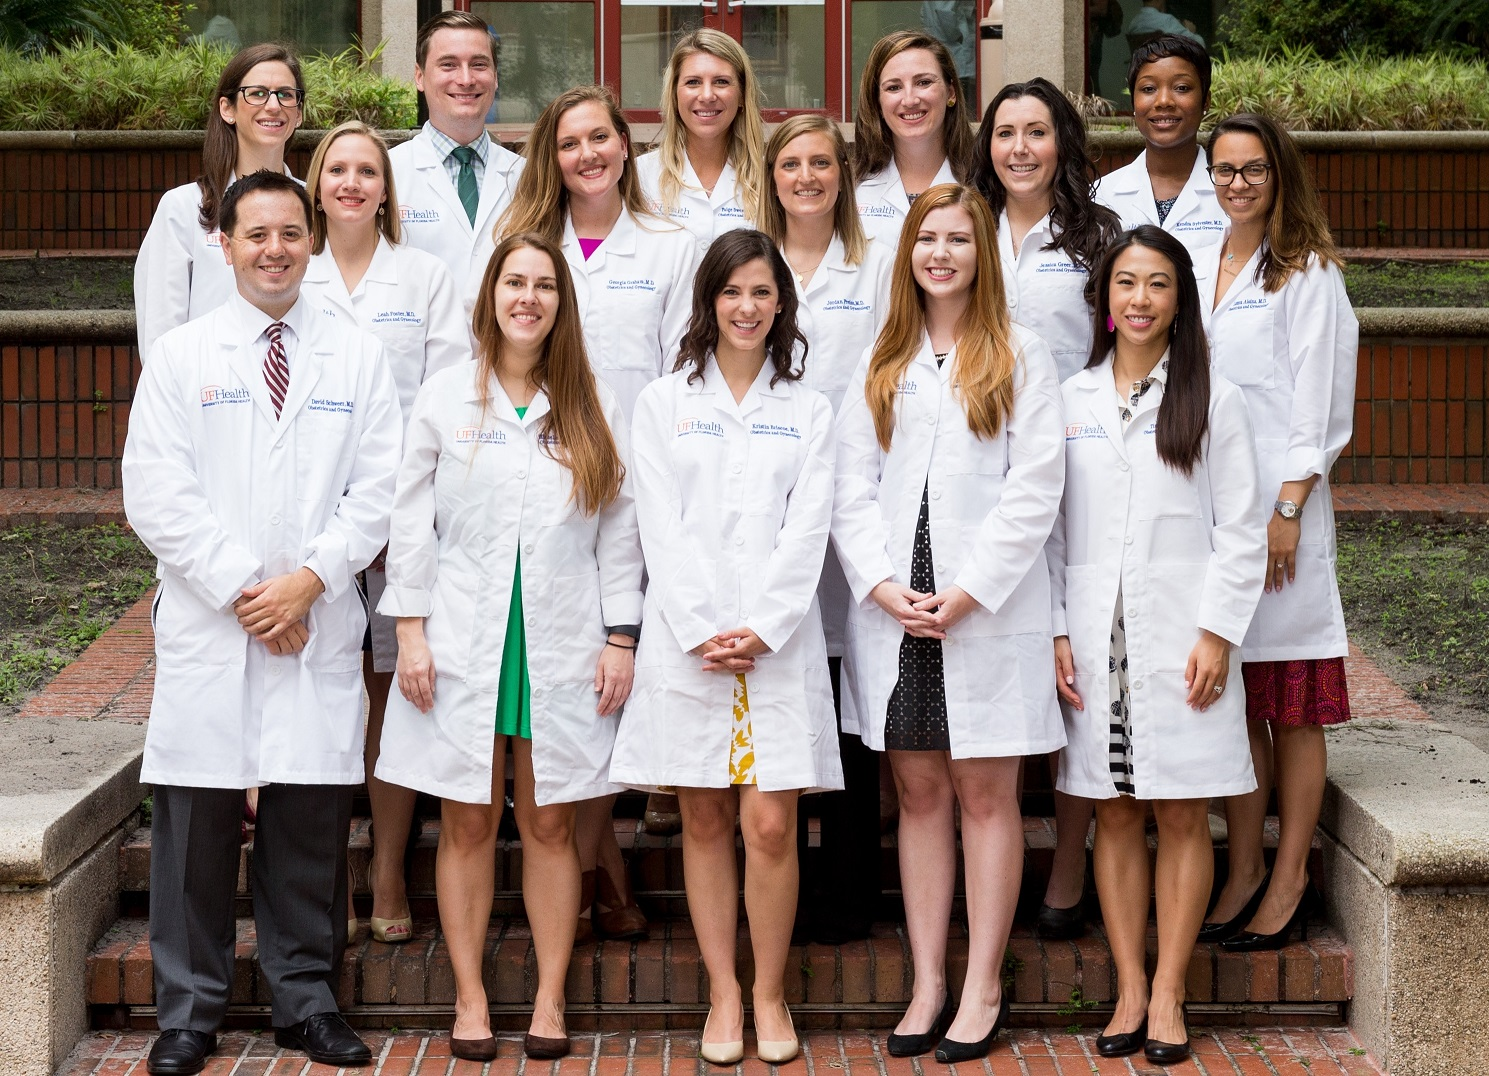 Residency Department Of Obstetrics Amp Gynecology College Of Medicine University Of Florida